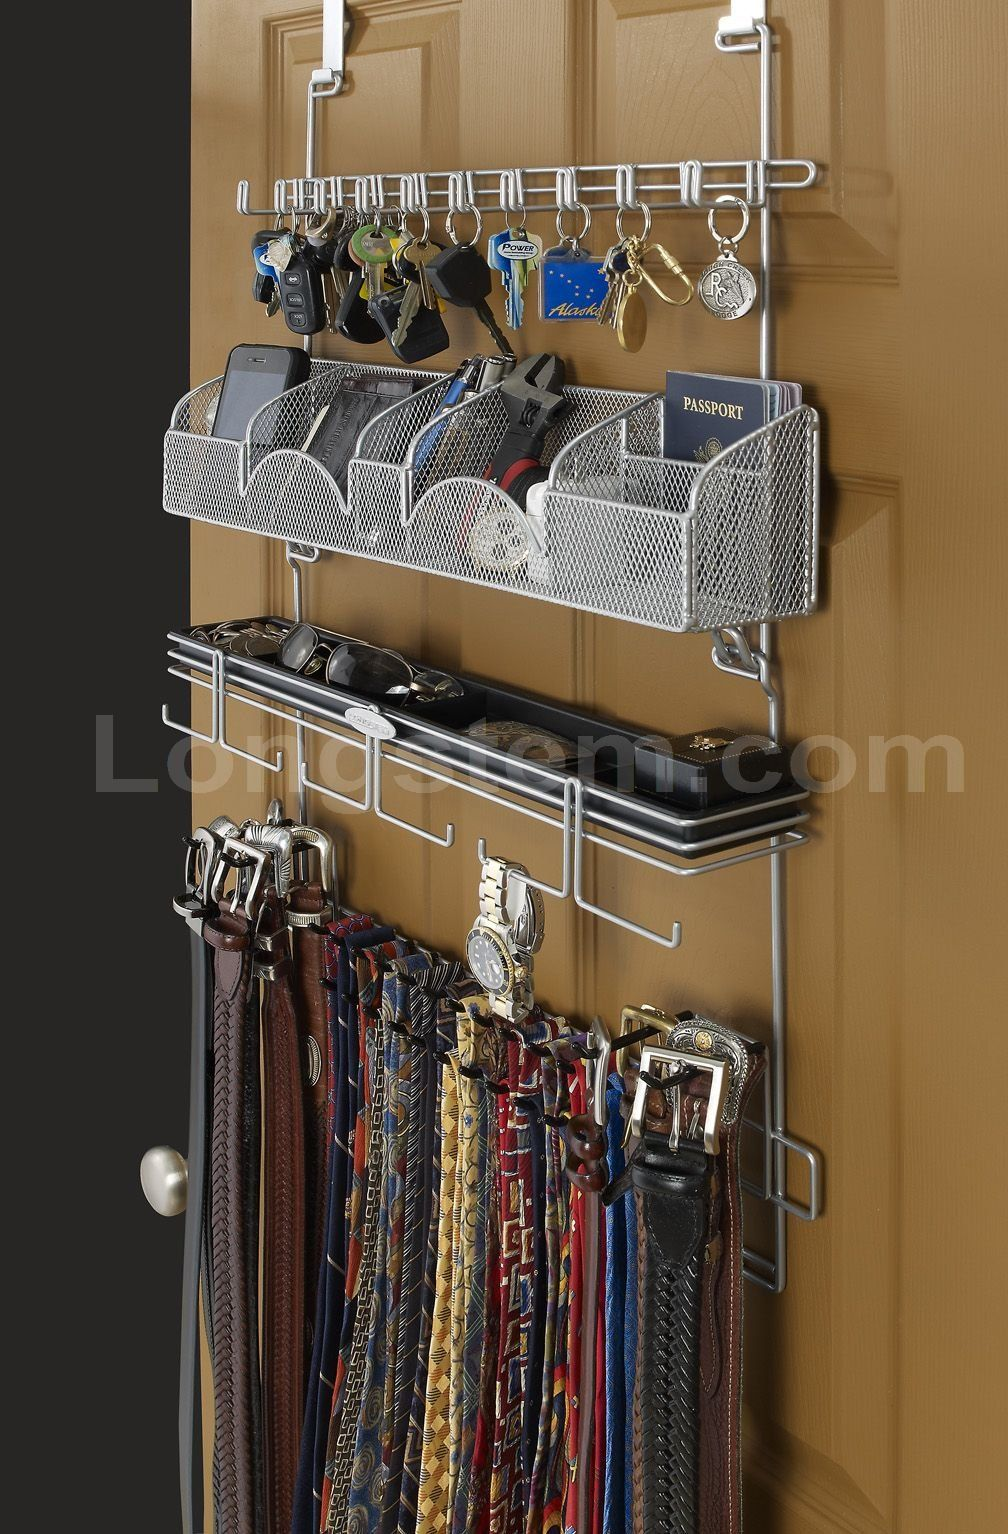 Longstem Men/'s Valet Over the Door//Wall Organizer #9200 Tie Belt Key Rack  Black